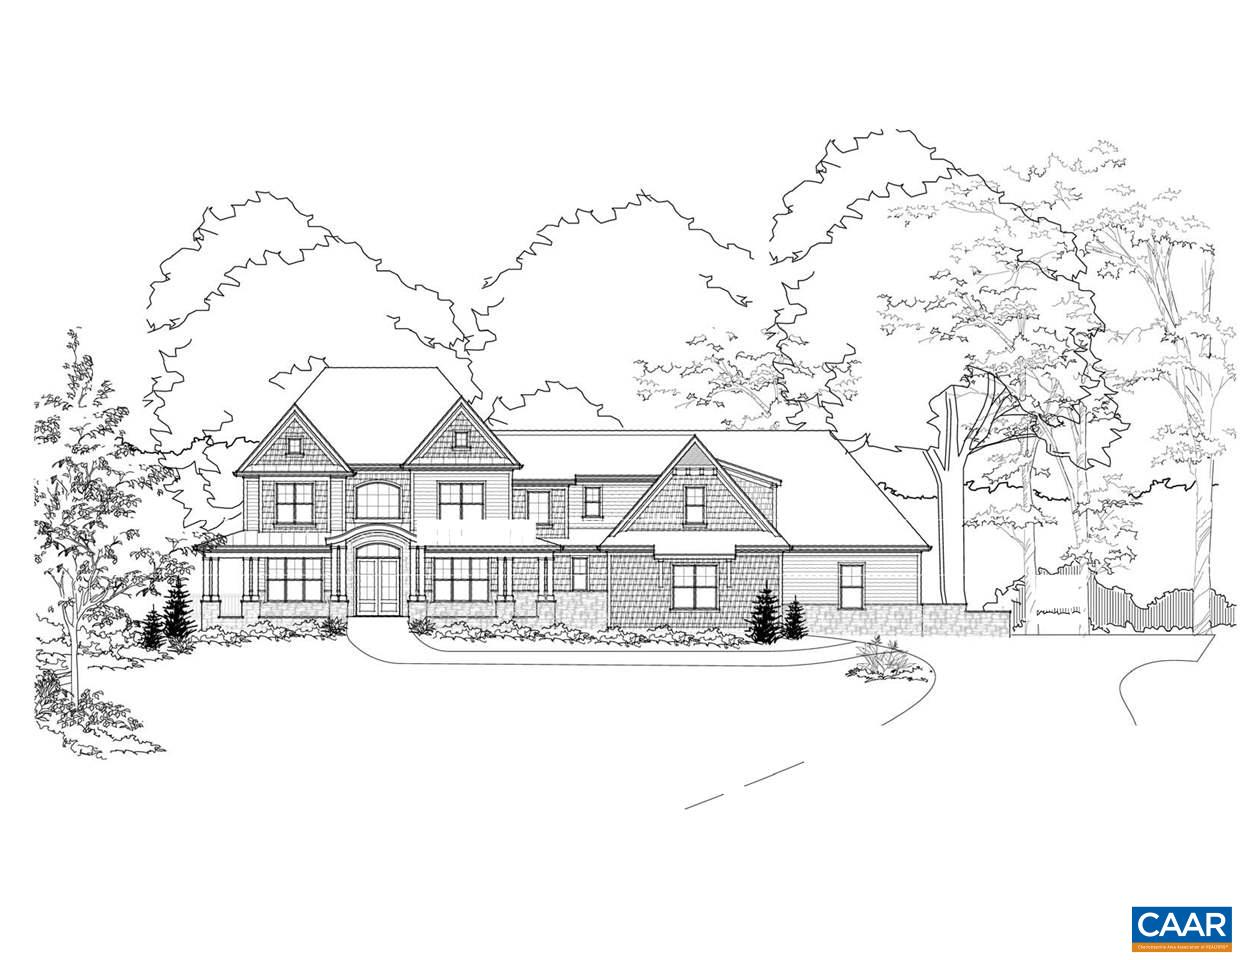 Proffit Ridge's latest Proposed Home built by Dominion Custom Homes. Many Kitchen upgrades, large Great Room, 1st & 2nd Fl Master Bedrooms. Covered Porch and Deck are perfect for entertaining guests. Private, wooded lot with plenty of acreage that is located 15 minutes from Charlottesville (Pantops or 29 corridor) and 20 minutes from Downtown. This home features 4 bedrooms, 4 full bathrooms, and 2 half baths, an attached 4-car garage and plenty of upgrades and finishes. High speed internet available, 1 Gig through Comcast/Infinity. Built green and built to last, Dominion Custom Homes has a strong reputation of building quality homes in the Charlottesville area.